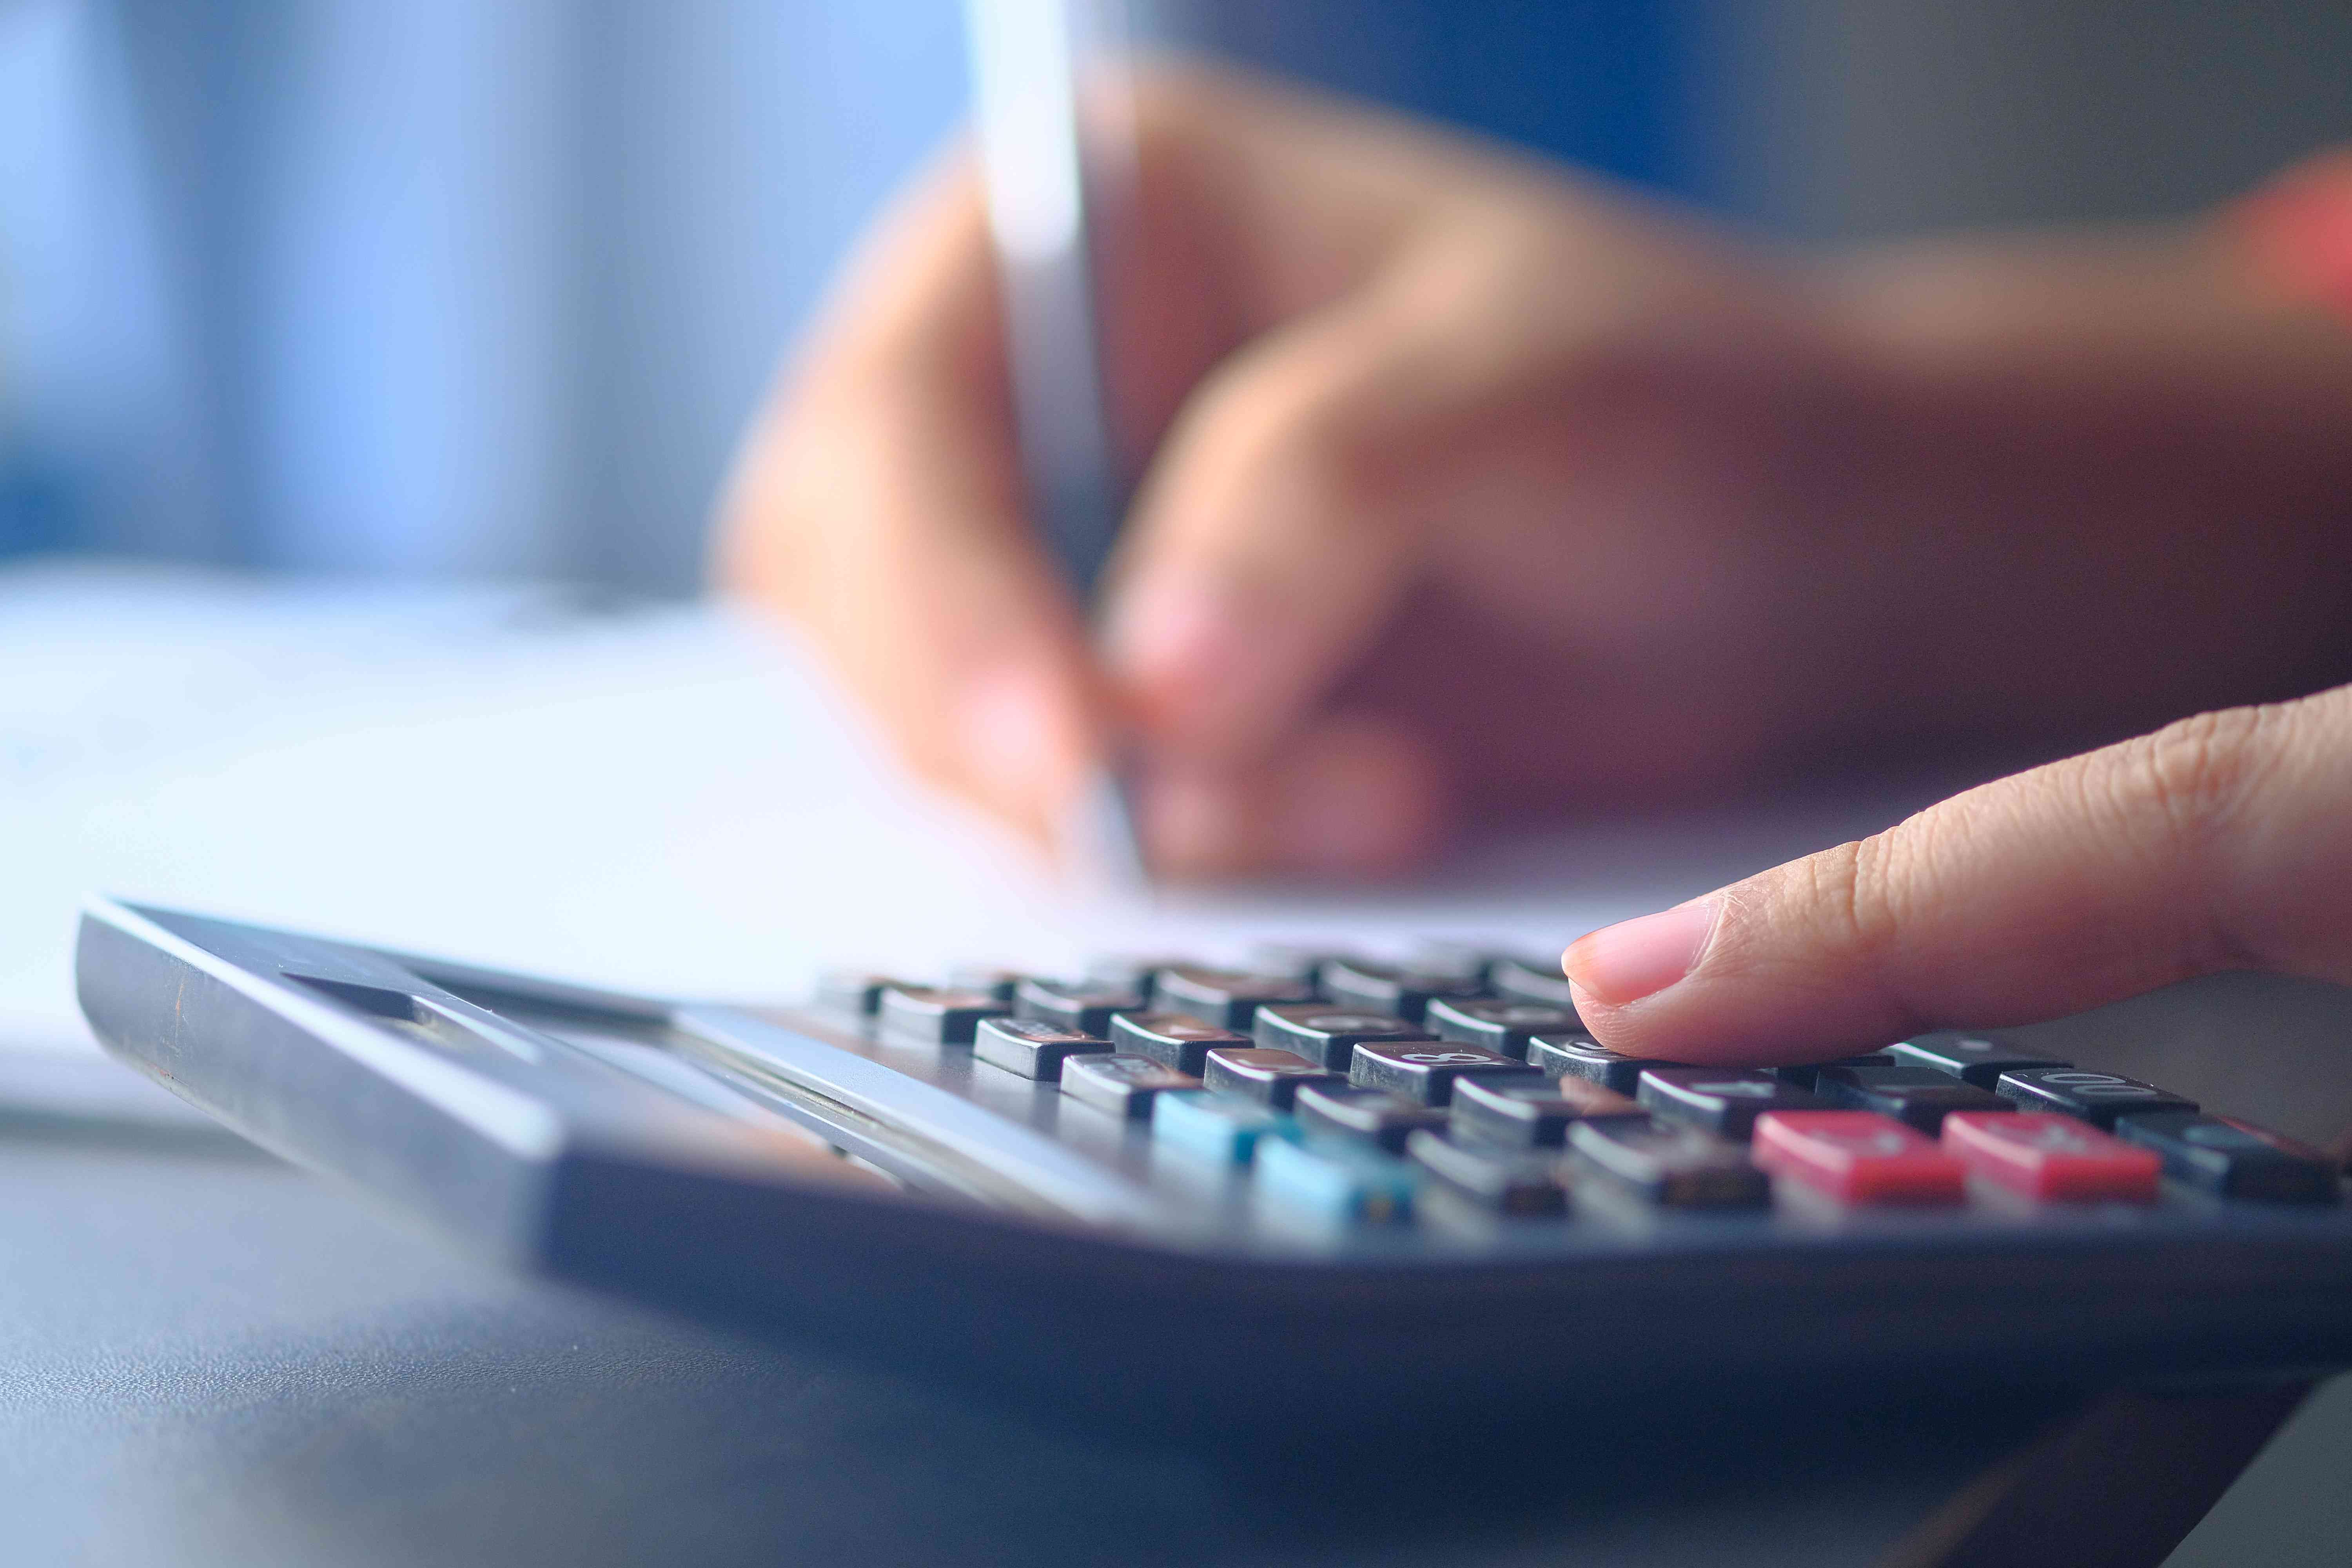 Woman tracking her spending by balancing her checkbook with a calculator